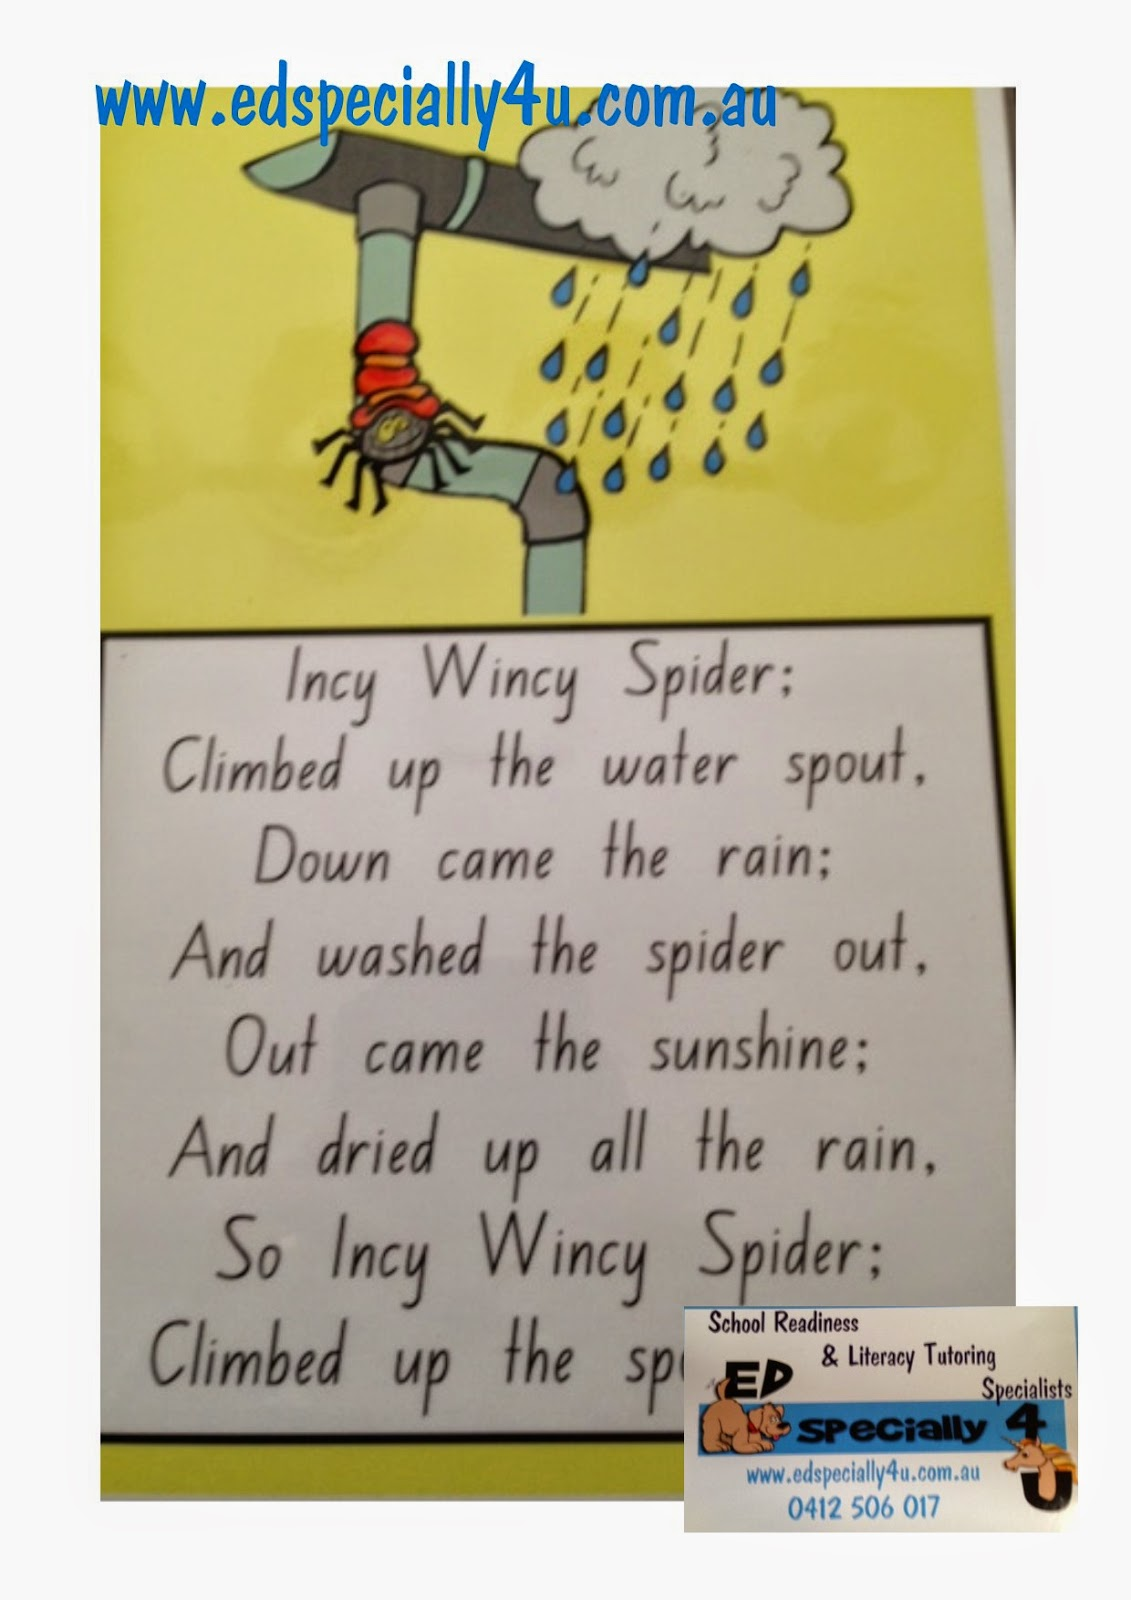 For The Love Of Learning Ed Specially 4u Incy Wincy Spider